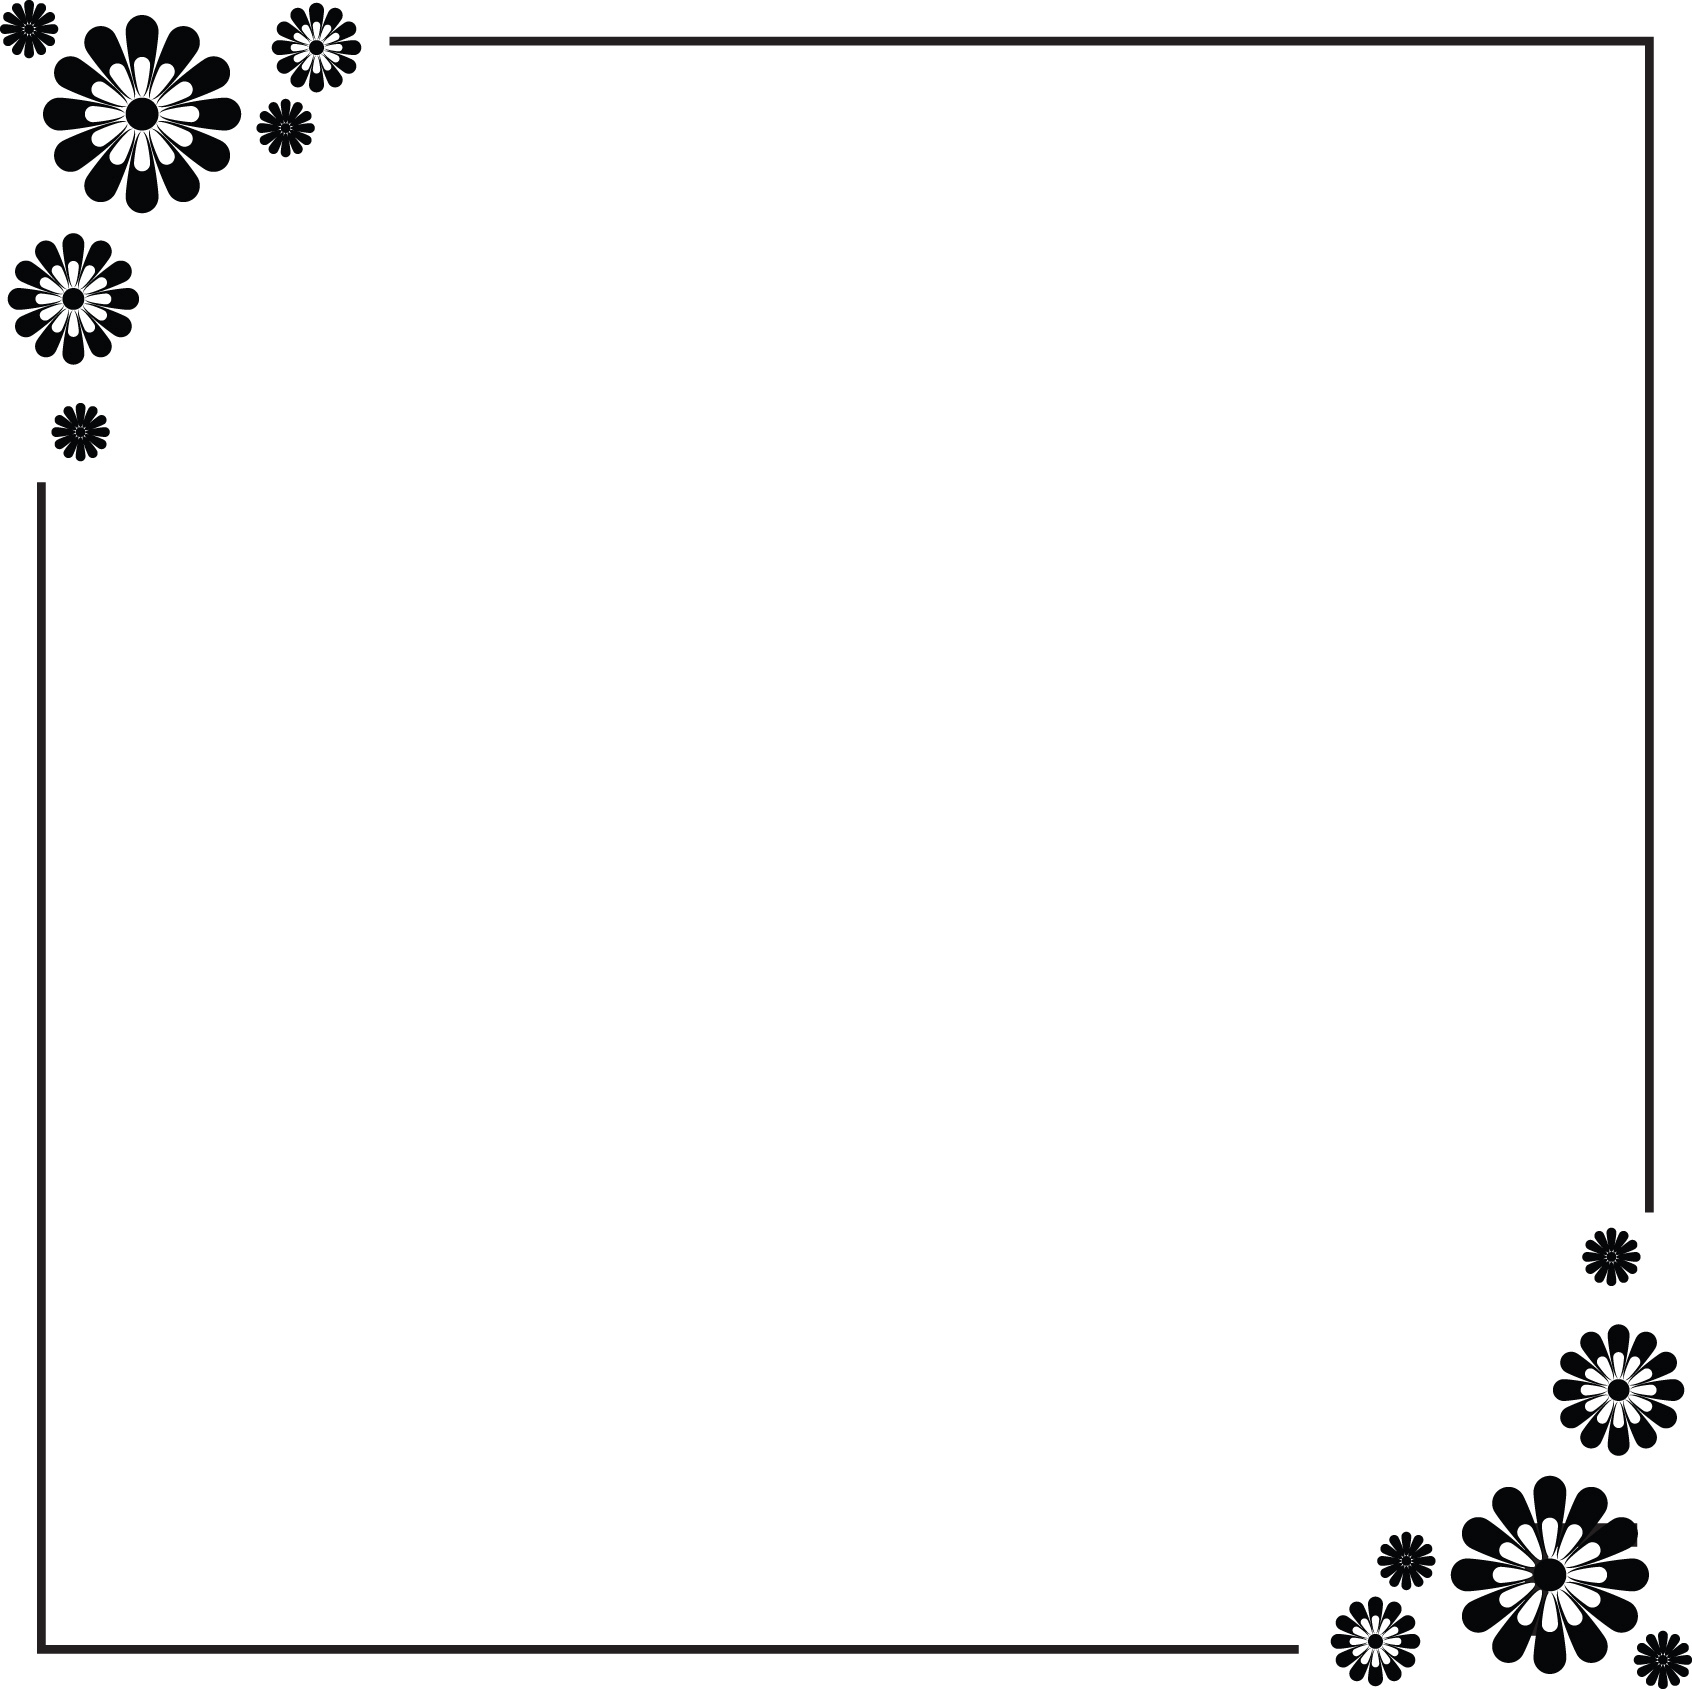 15 Simple Border Designs For Paper Images Simple Decorative Border